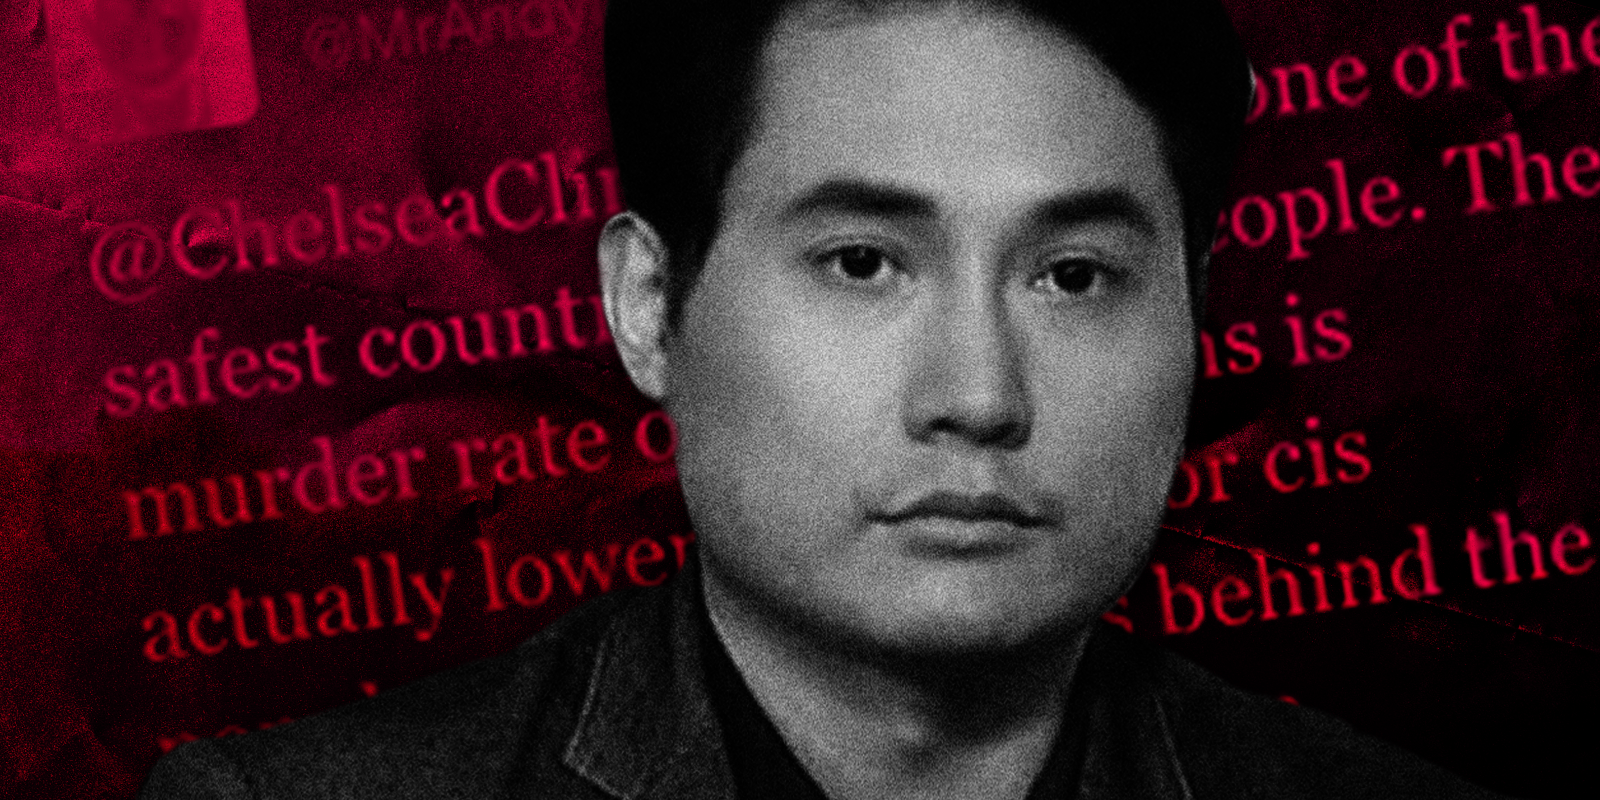 Andy Ngo responds: Twitter punishes you for telling the truth